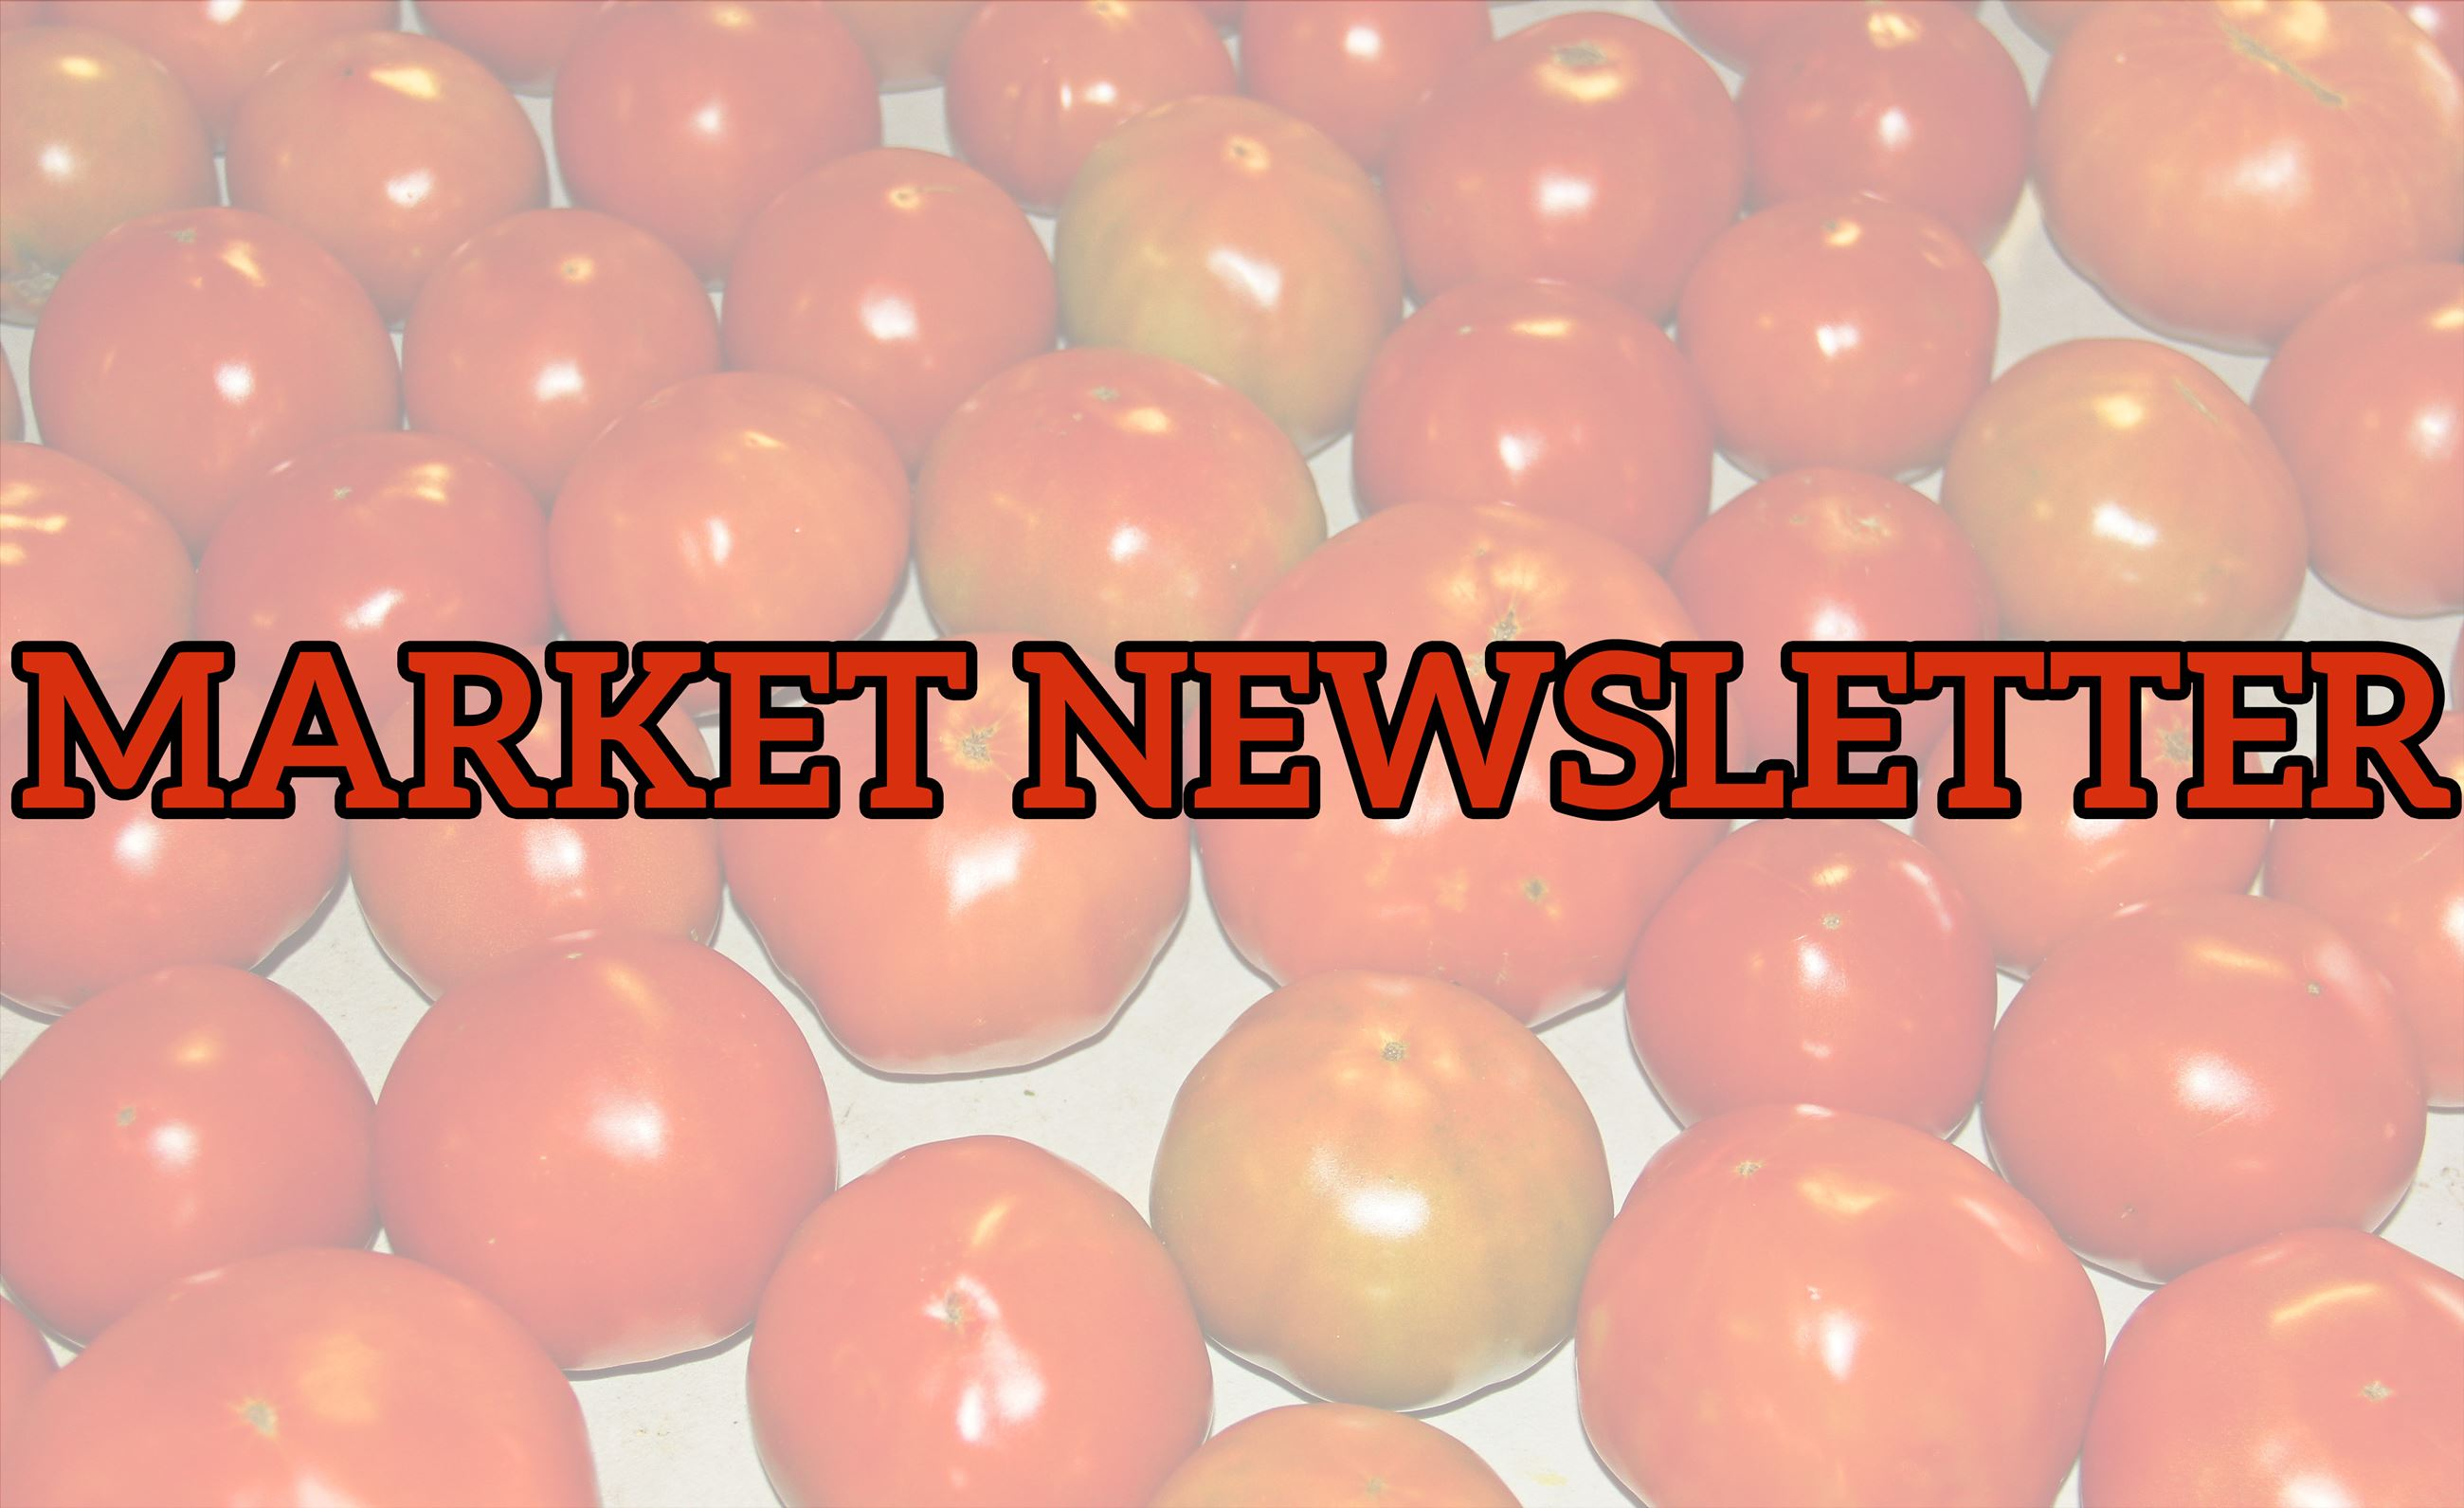 Market Newsletter